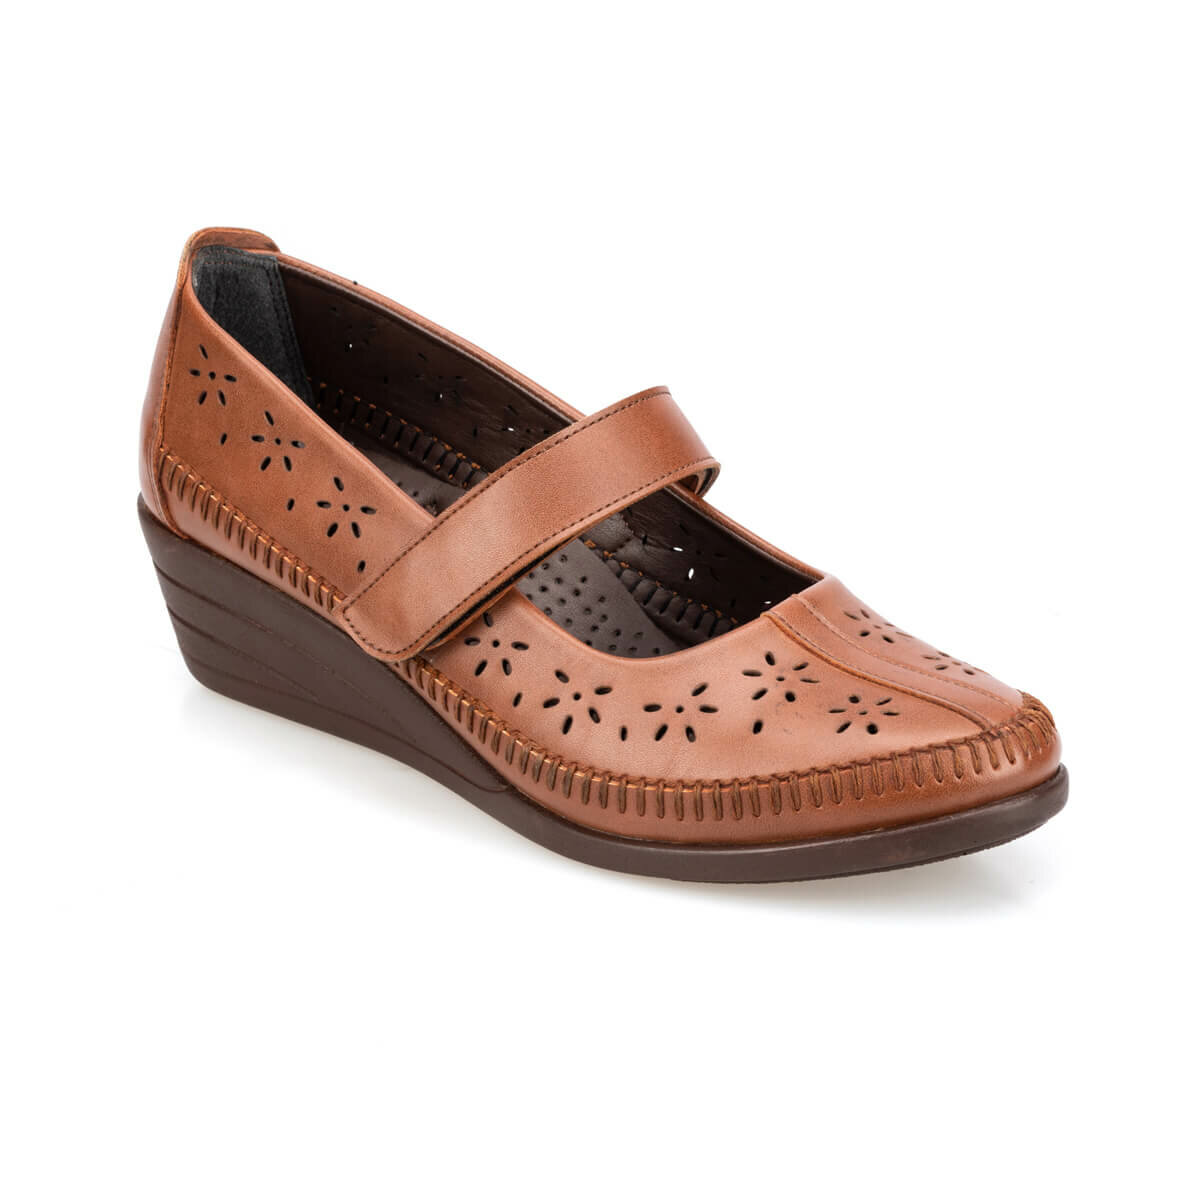 FLO 91.150708.Z Tan Women 'S Shoes Polaris